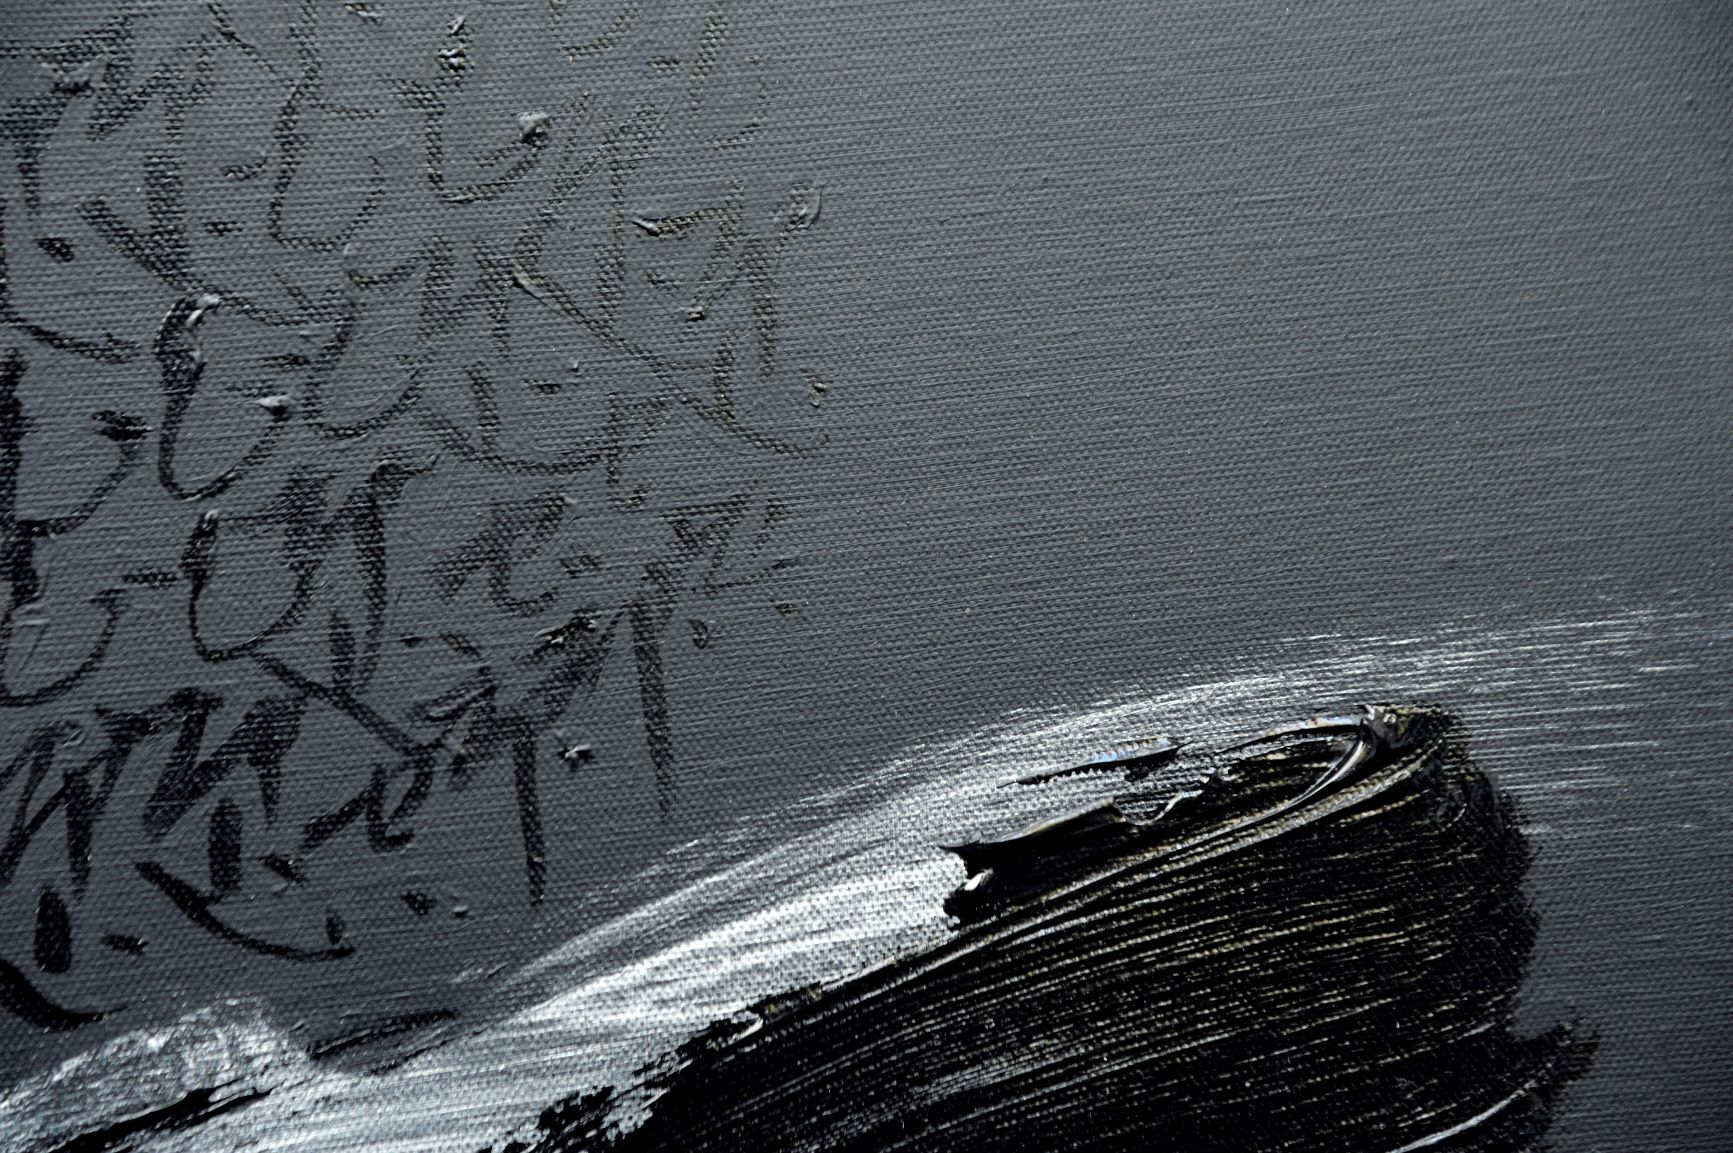 Permanescence TN736 D,Hachiro Kanno,Peinture contemporaine, detail 1